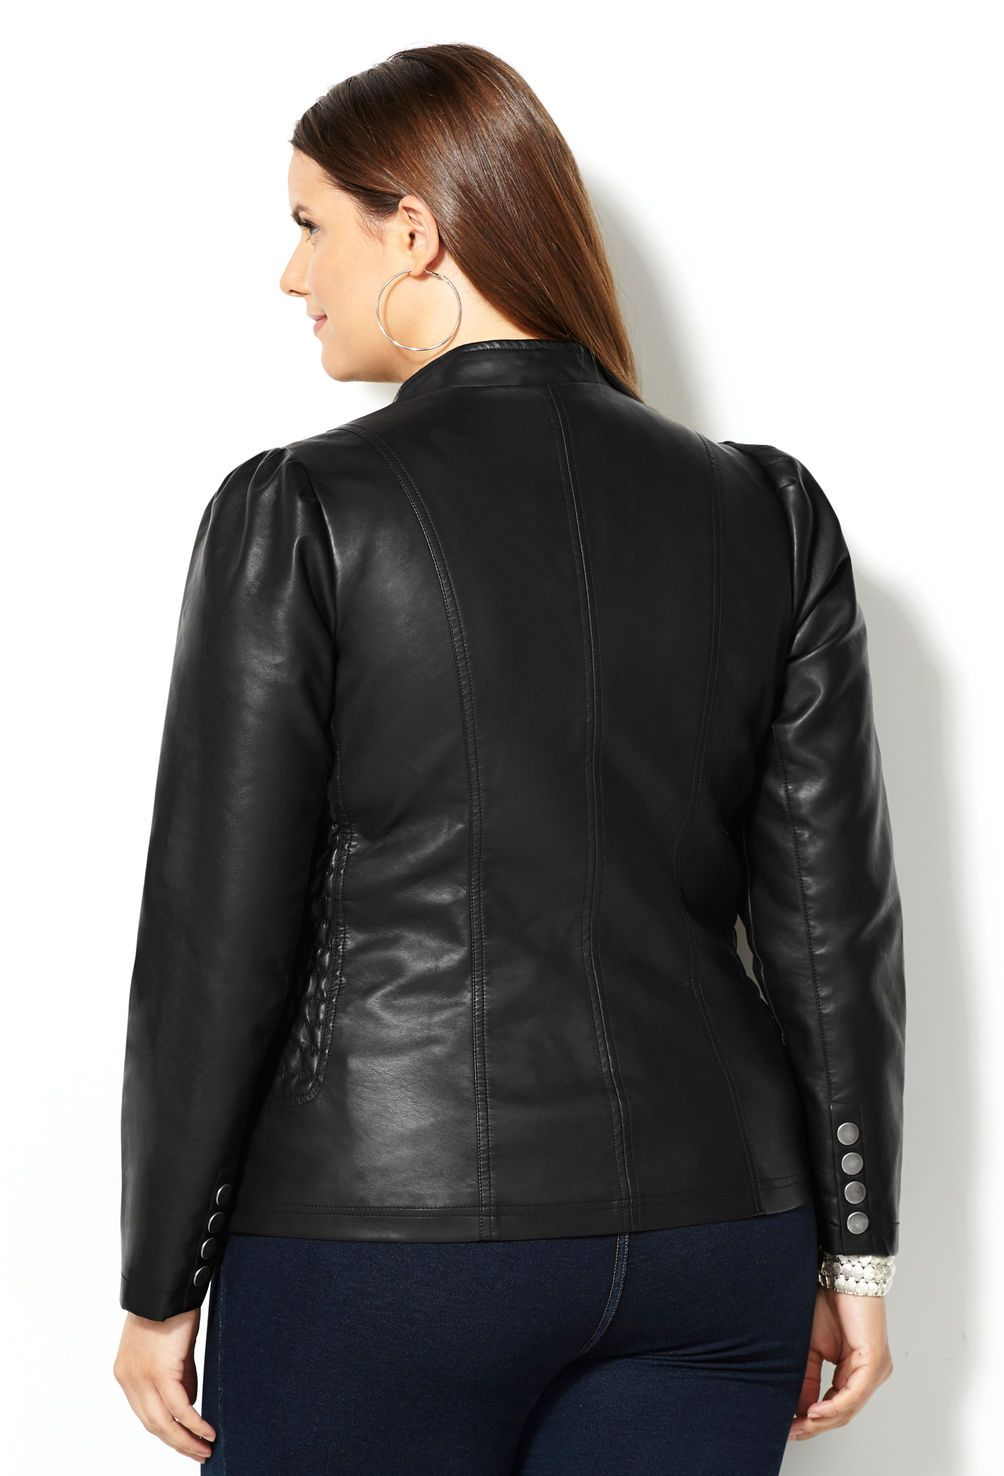 Quilted Side Faux Leather JacketPlus Size JacketAvenue